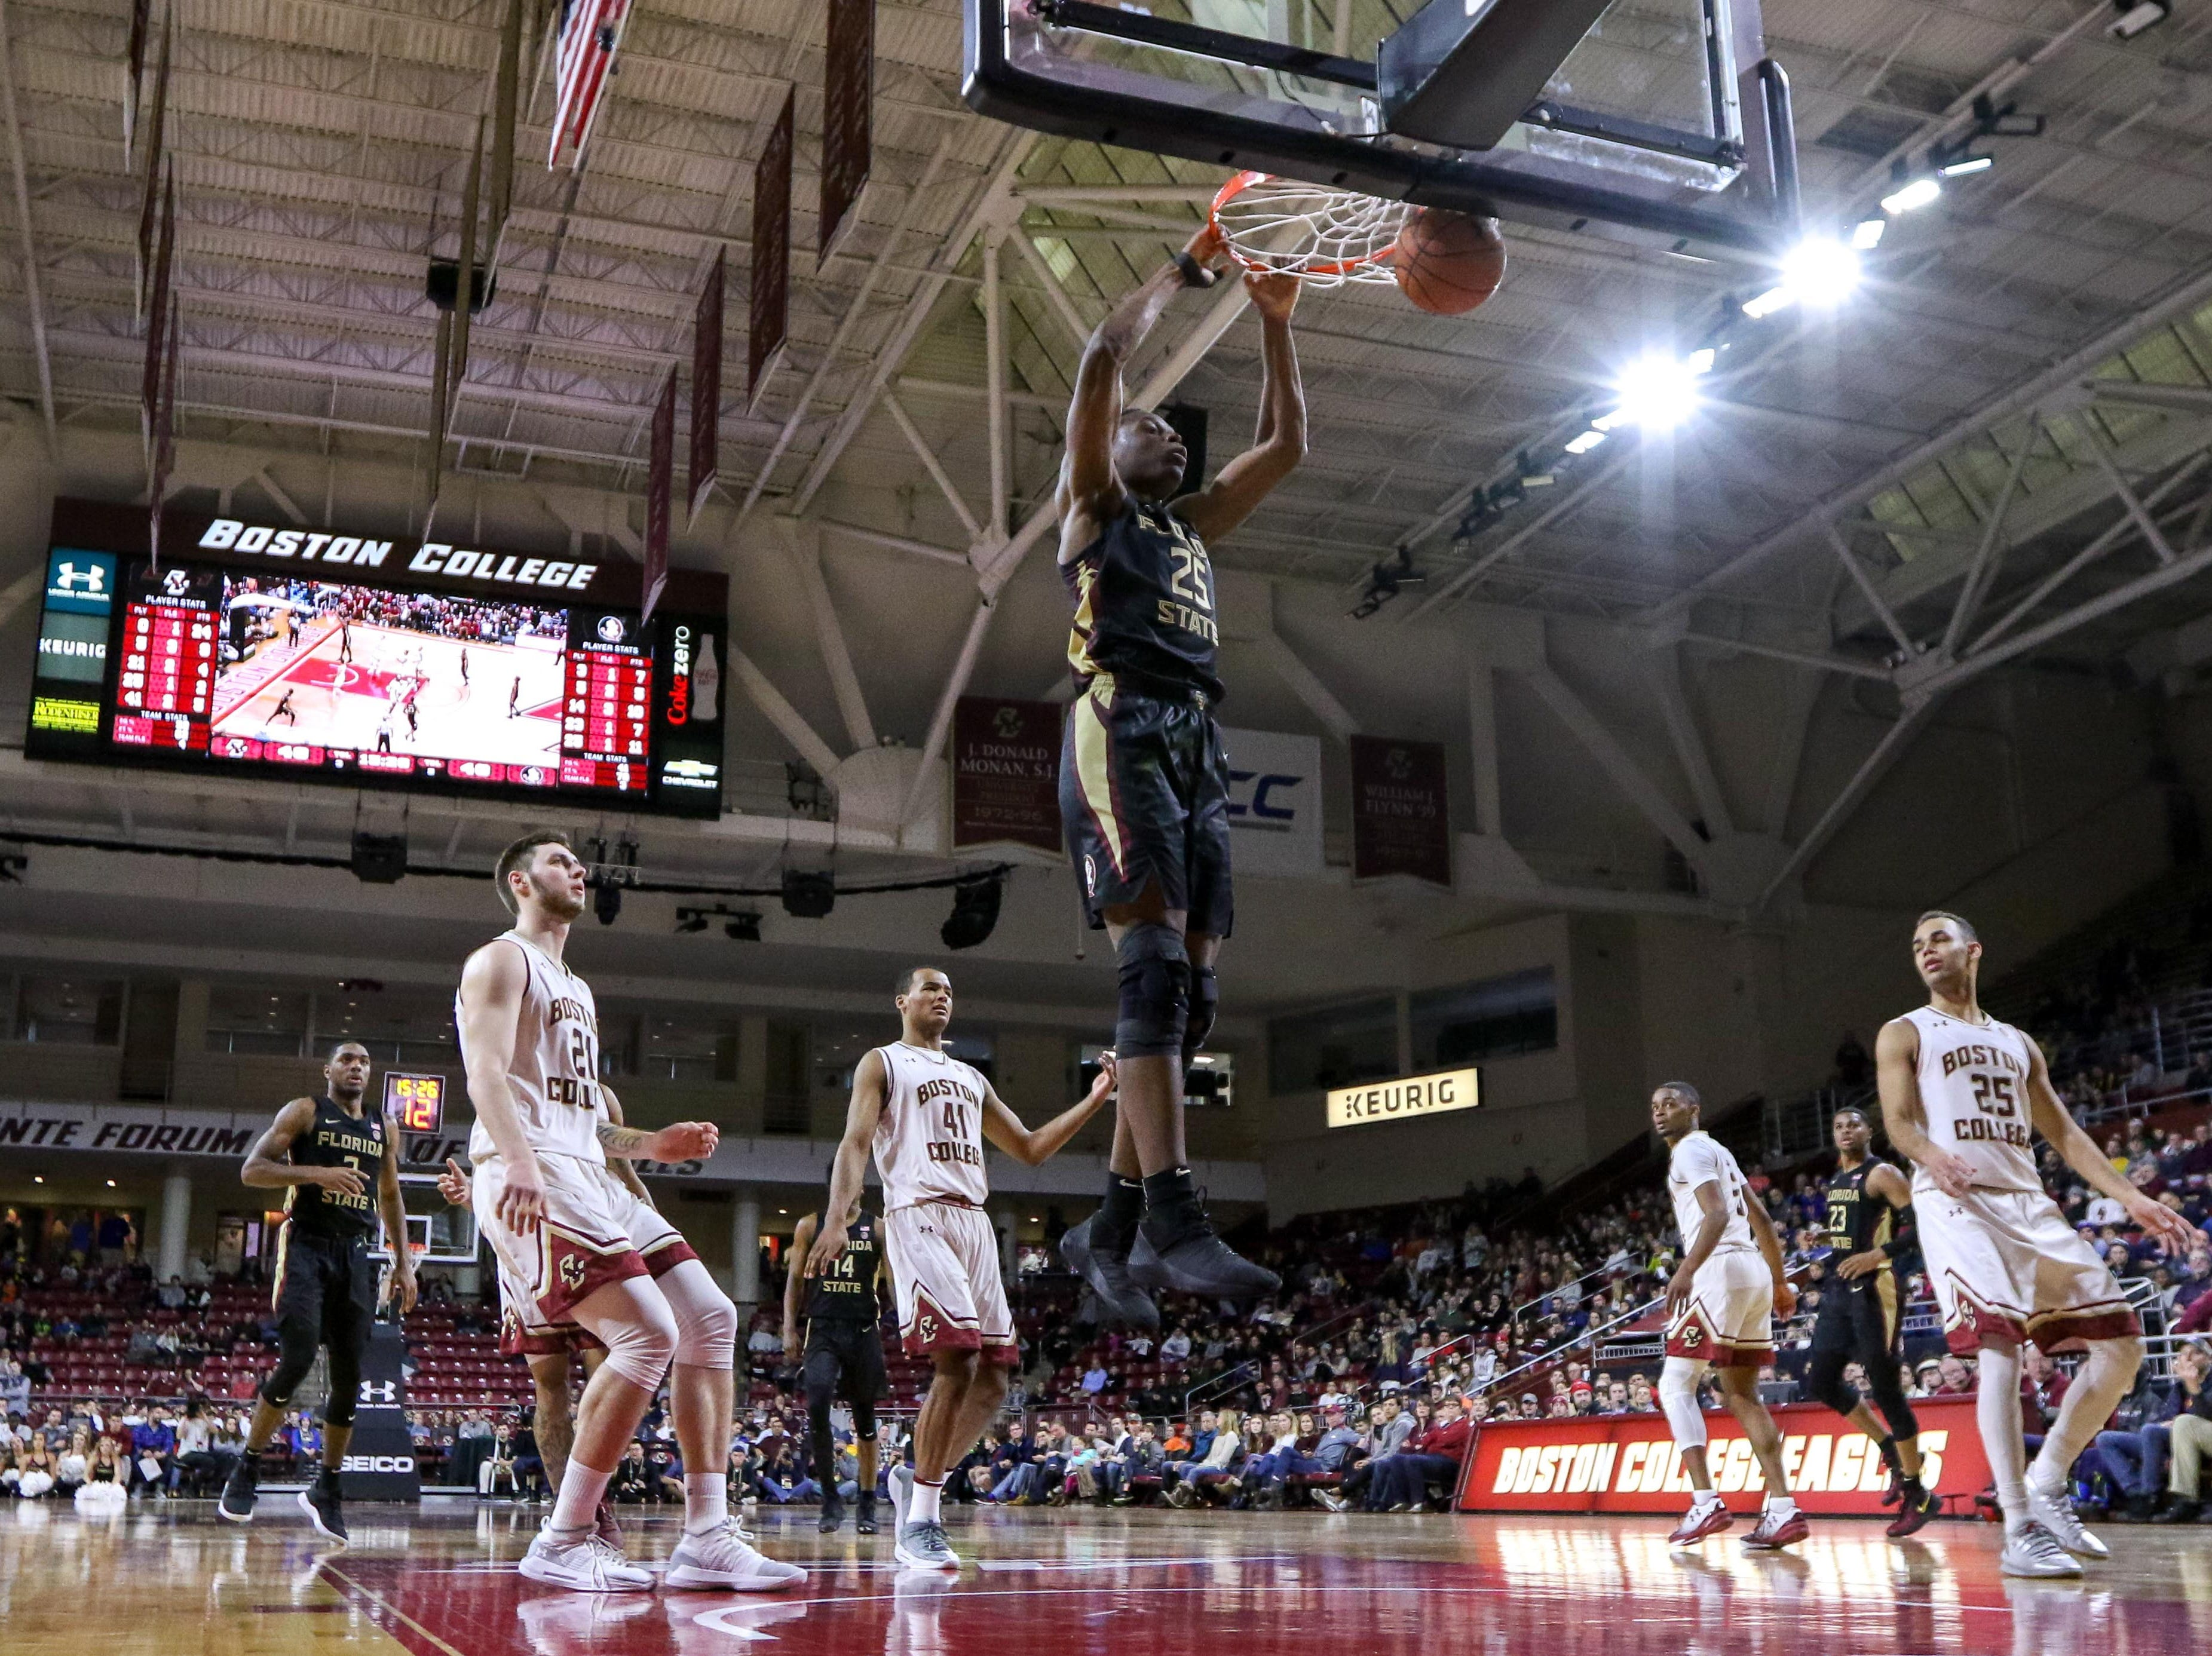 Jan 20, 2019; Chestnut Hill, MA, USA; Florida State Seminoles forward Mfiondu Kabengele (25) dunks the ball against the Boston College Eagles during the second half at Conte Forum. Mandatory Credit: Paul Rutherford-USA TODAY Sports